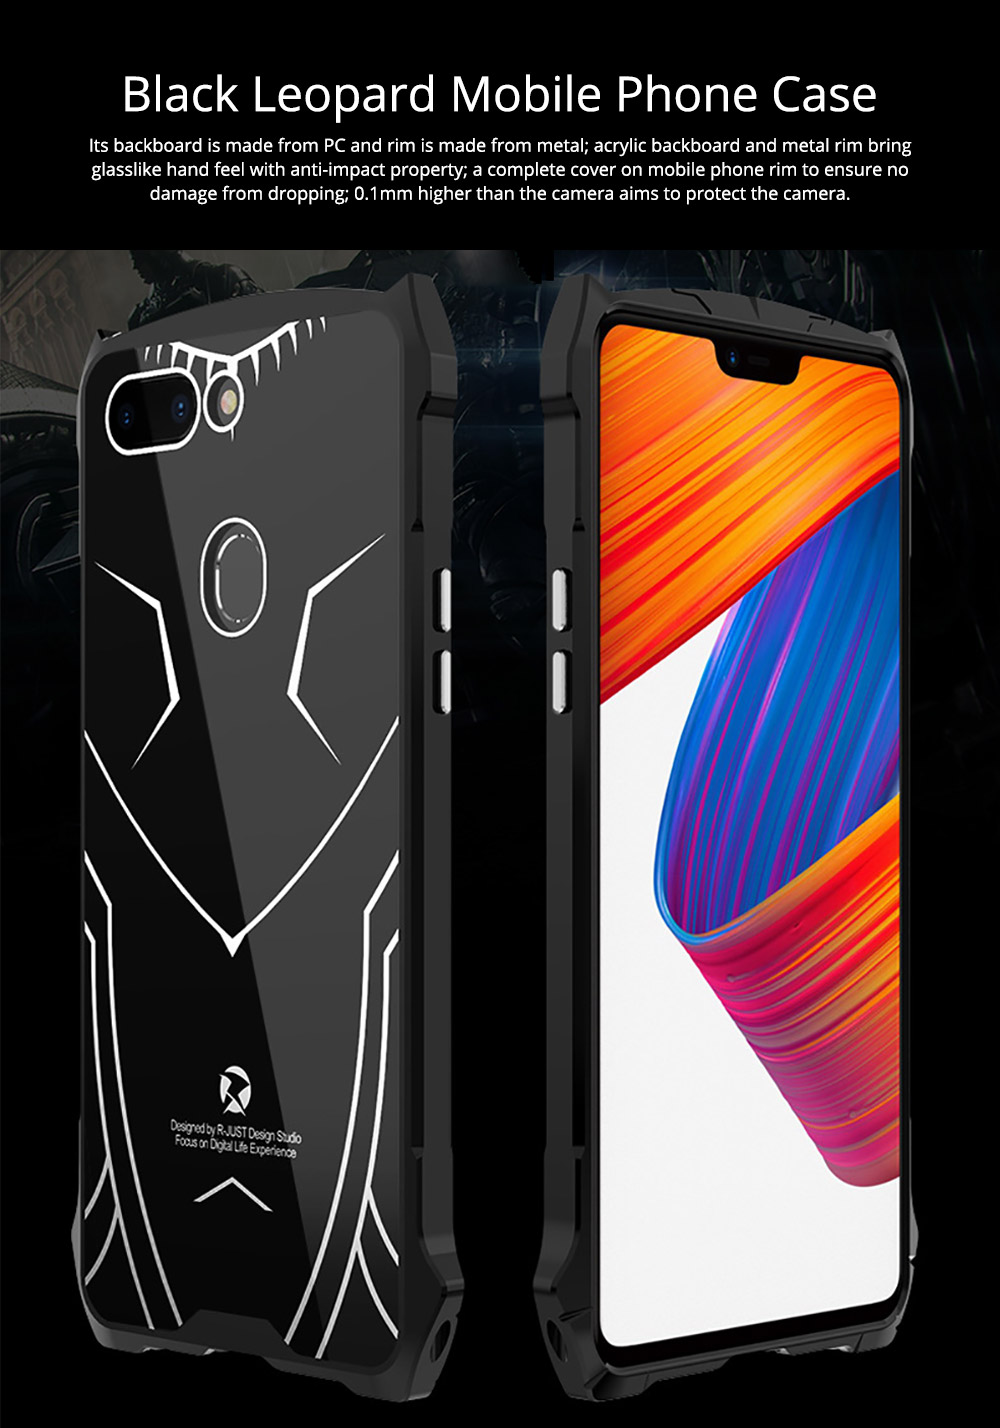 New-style Phone Case OPPO R15 Phone Cover Creative VIVO X21 Mobile Phone Protective Case PC Metal Phone Case Handset Accessories 0